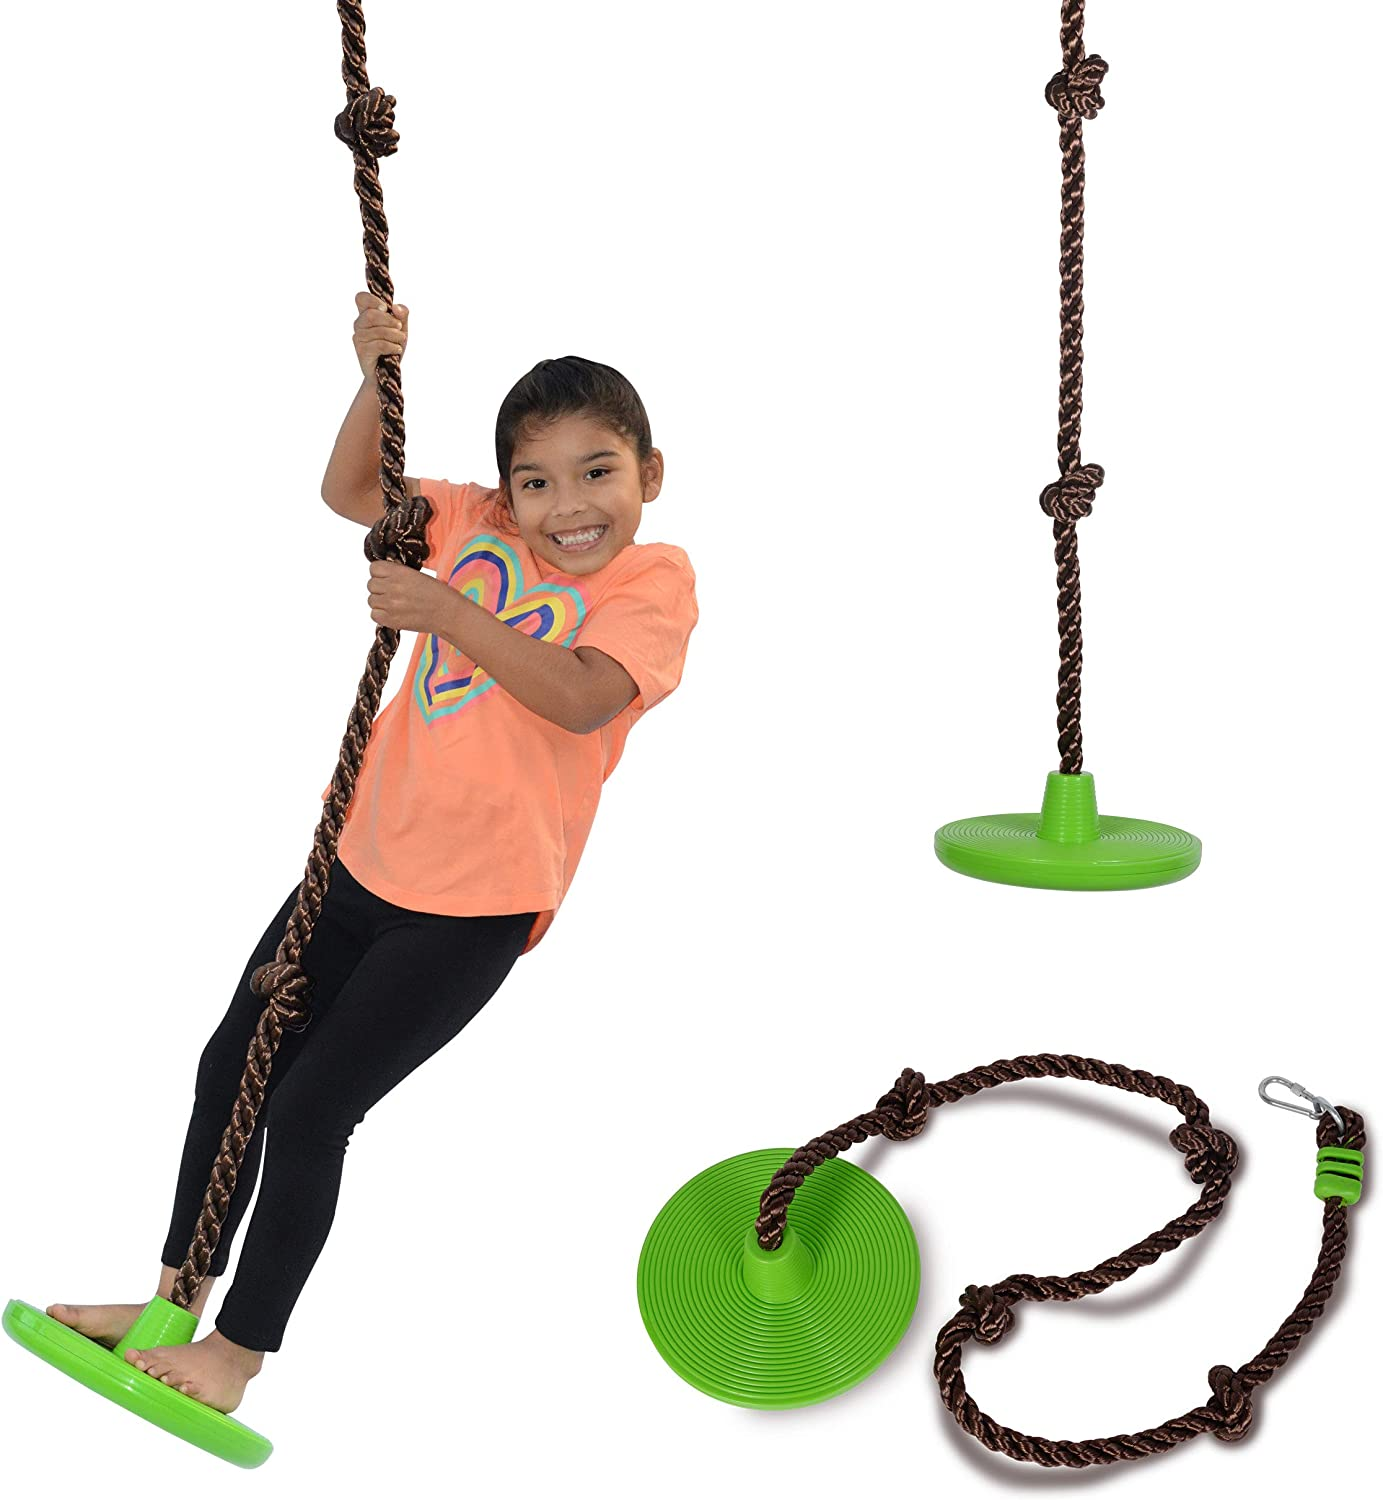 Swurfer Disco - 3-in-1 Multi-Purpose Sit, Stand, & Climb Disc Swing, Heavy Duty Climbing Rope Swing - 6 Foot Rope with Four Adjustable Knots, Holds 200lbs, Ages 4 and Up